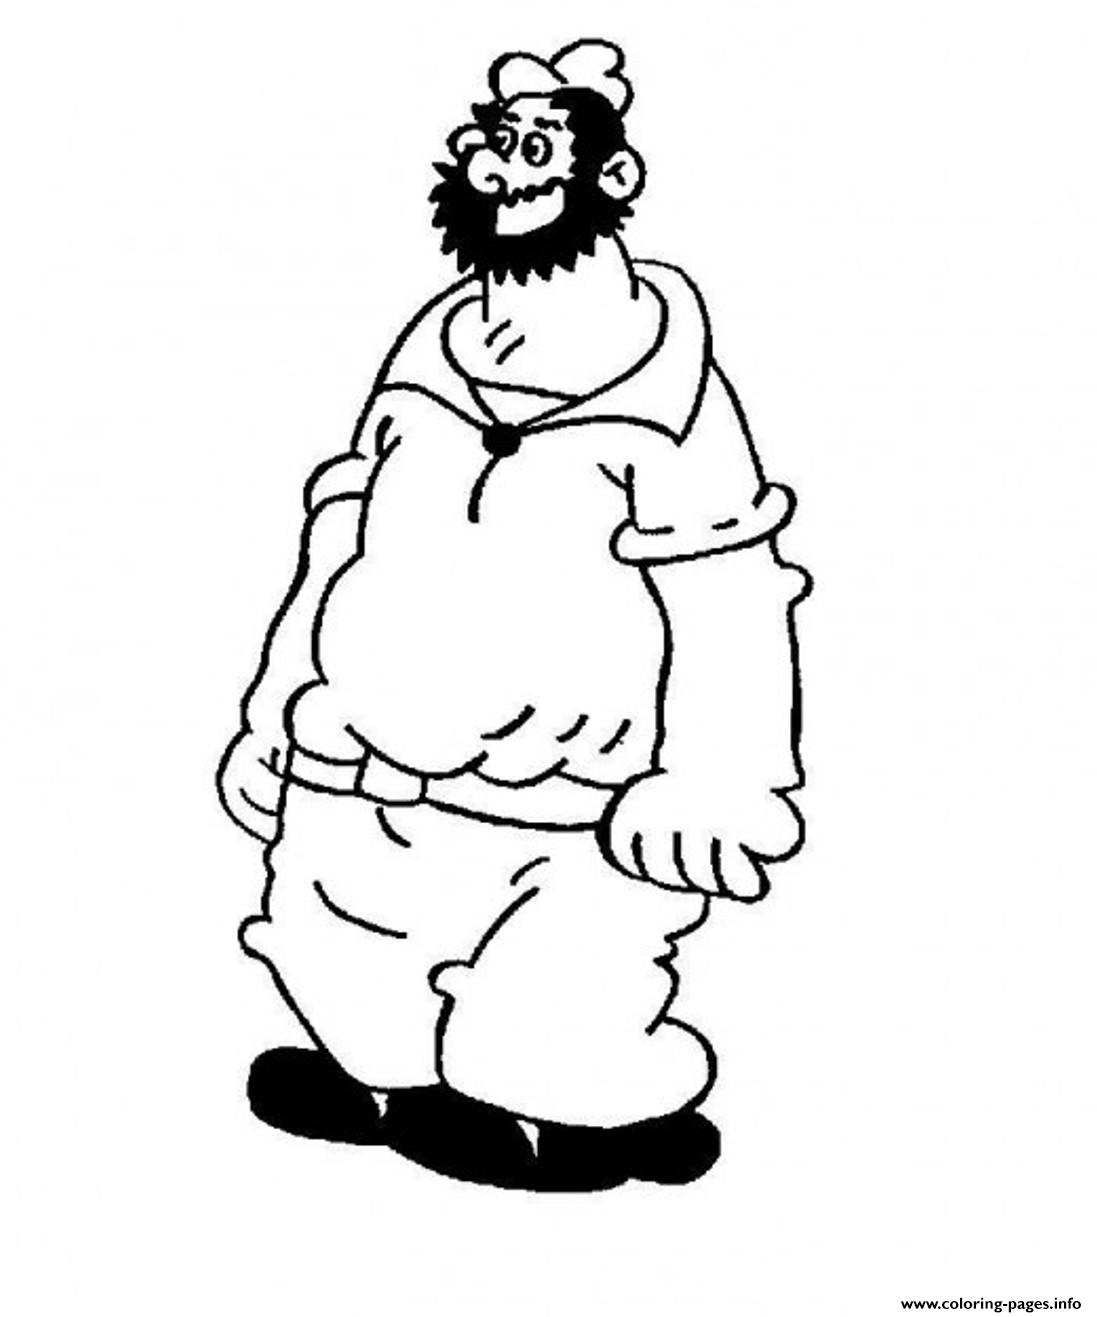 Bluto popeye sd2b3 coloring pages printable for Popeye coloring pages